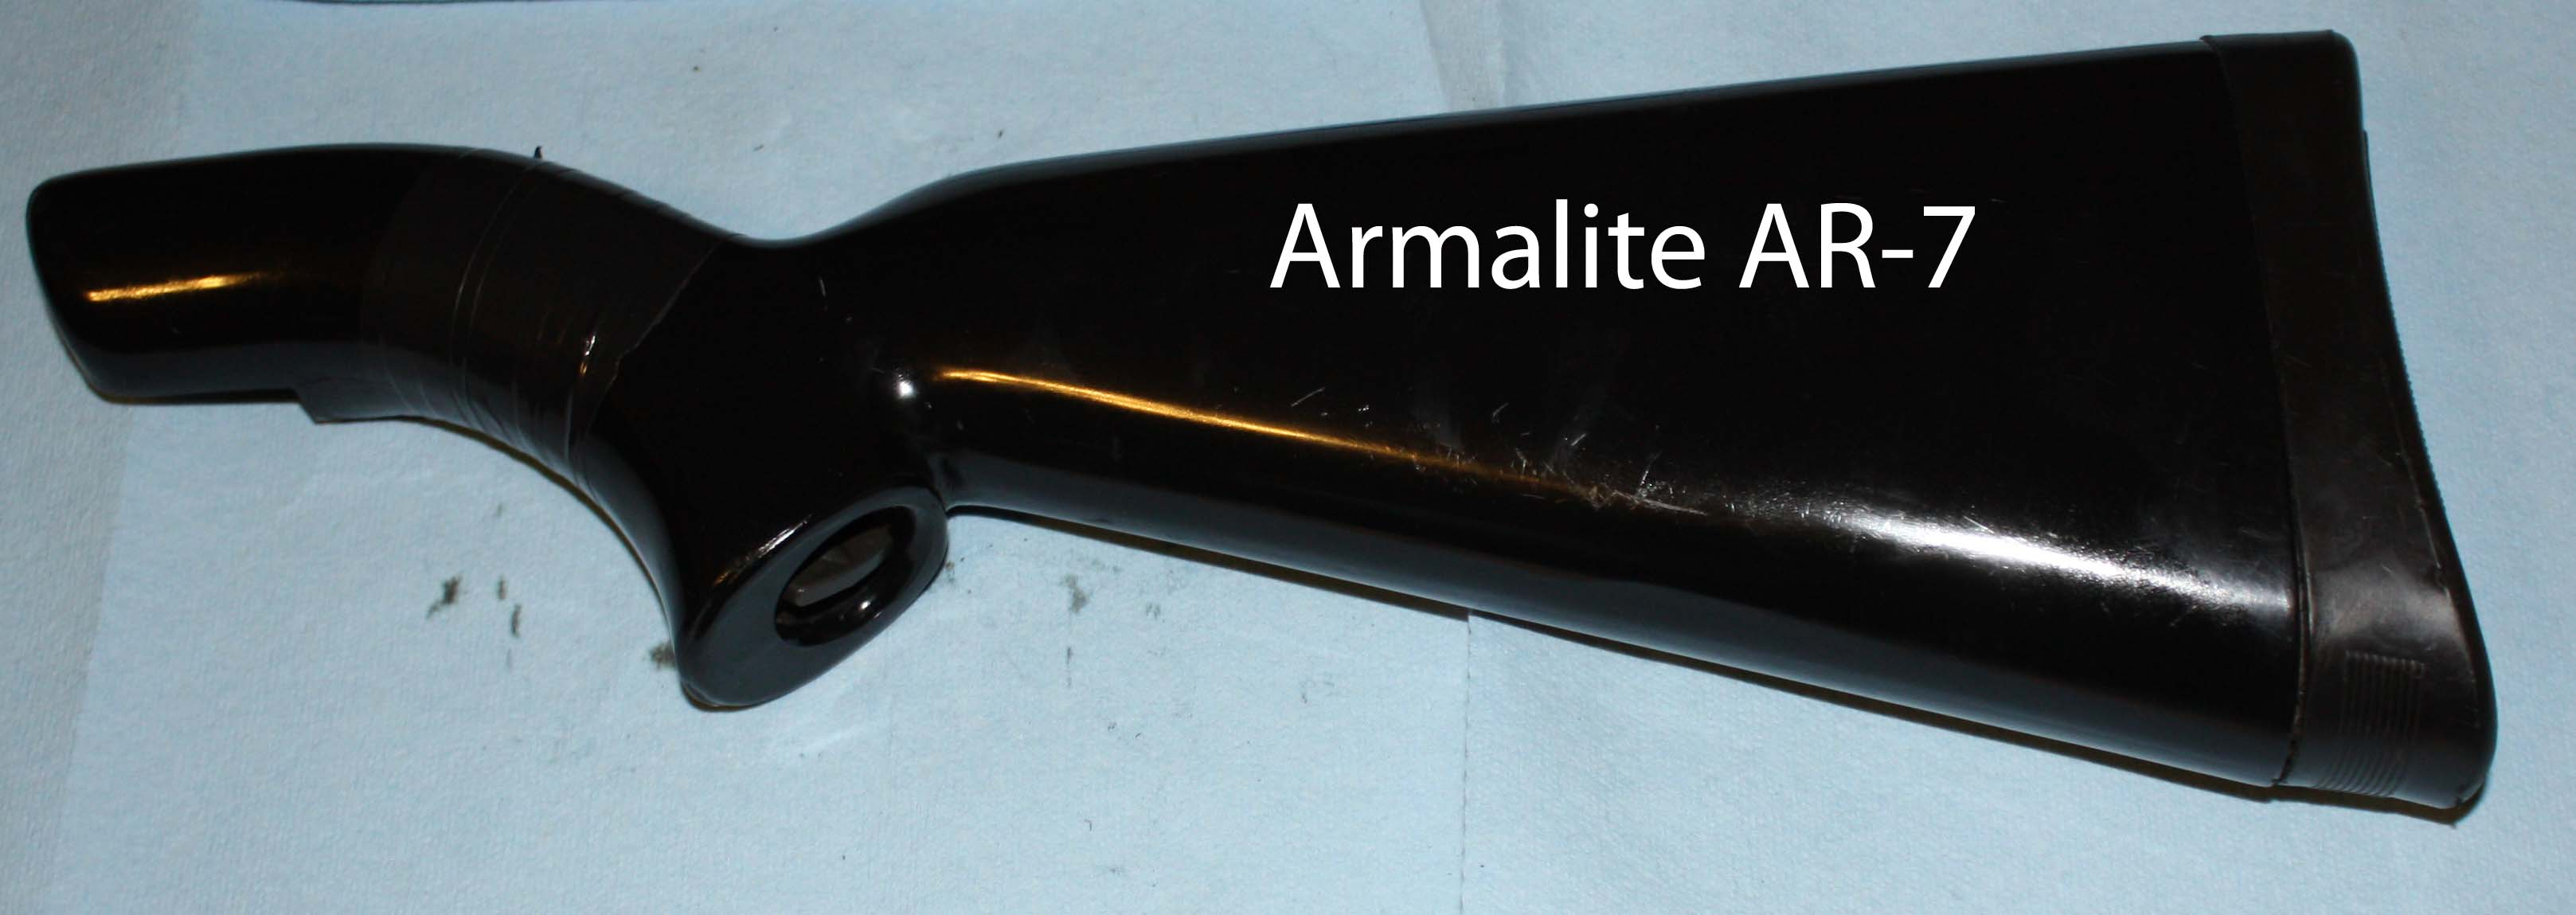 The Care and Feeding of the Armalite AR-7